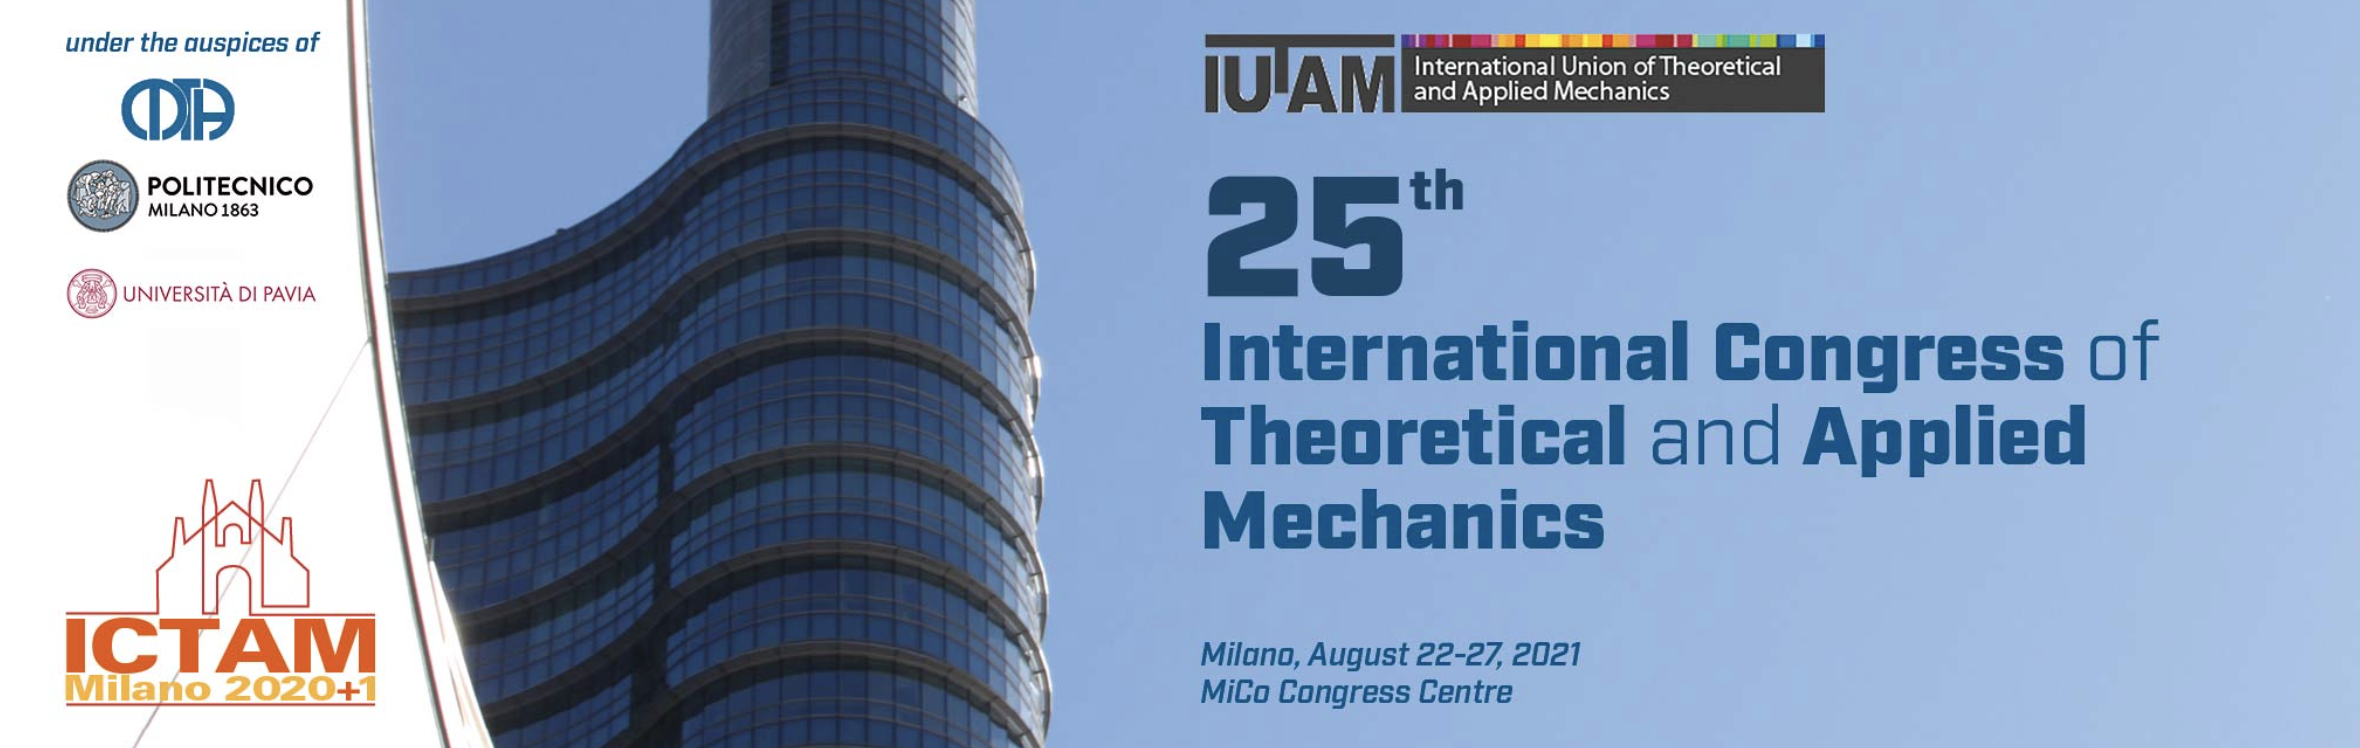 25th International Congress of Theoretical and Applied Mechanicd